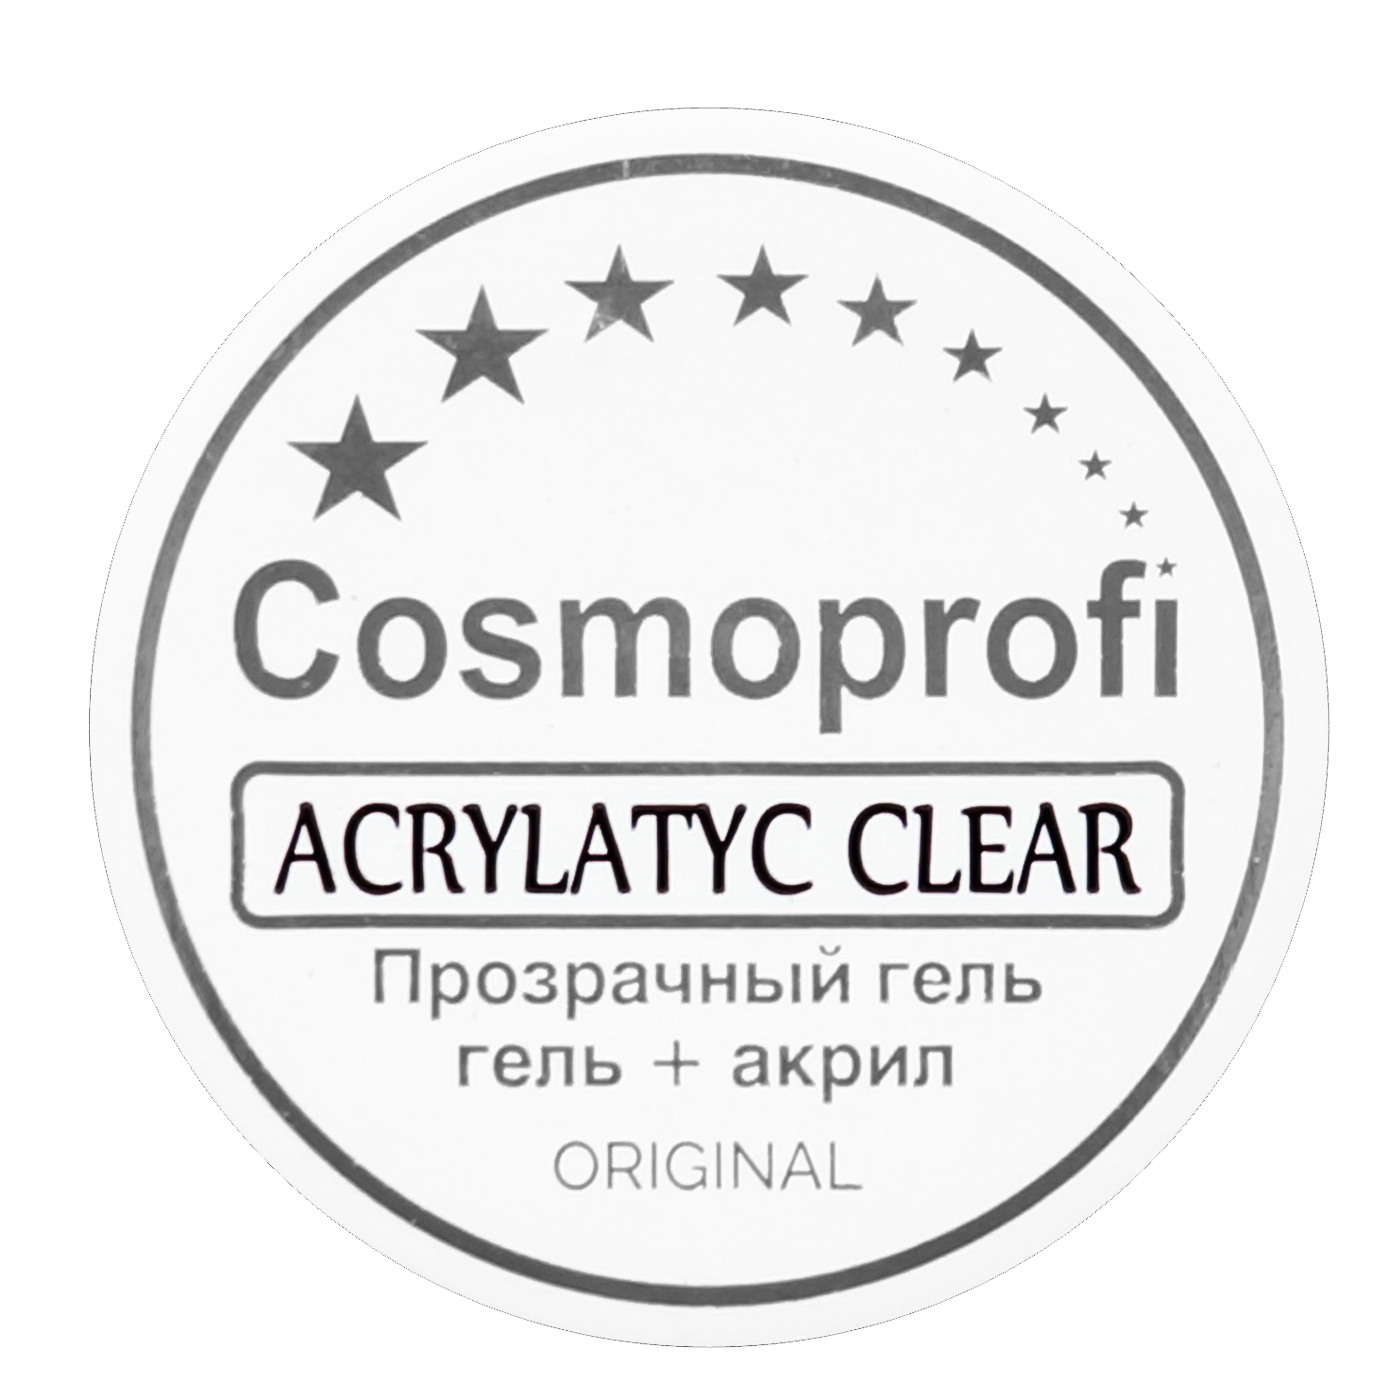 Acrylatic Clear Cosmoprofi 50 г для ногтей